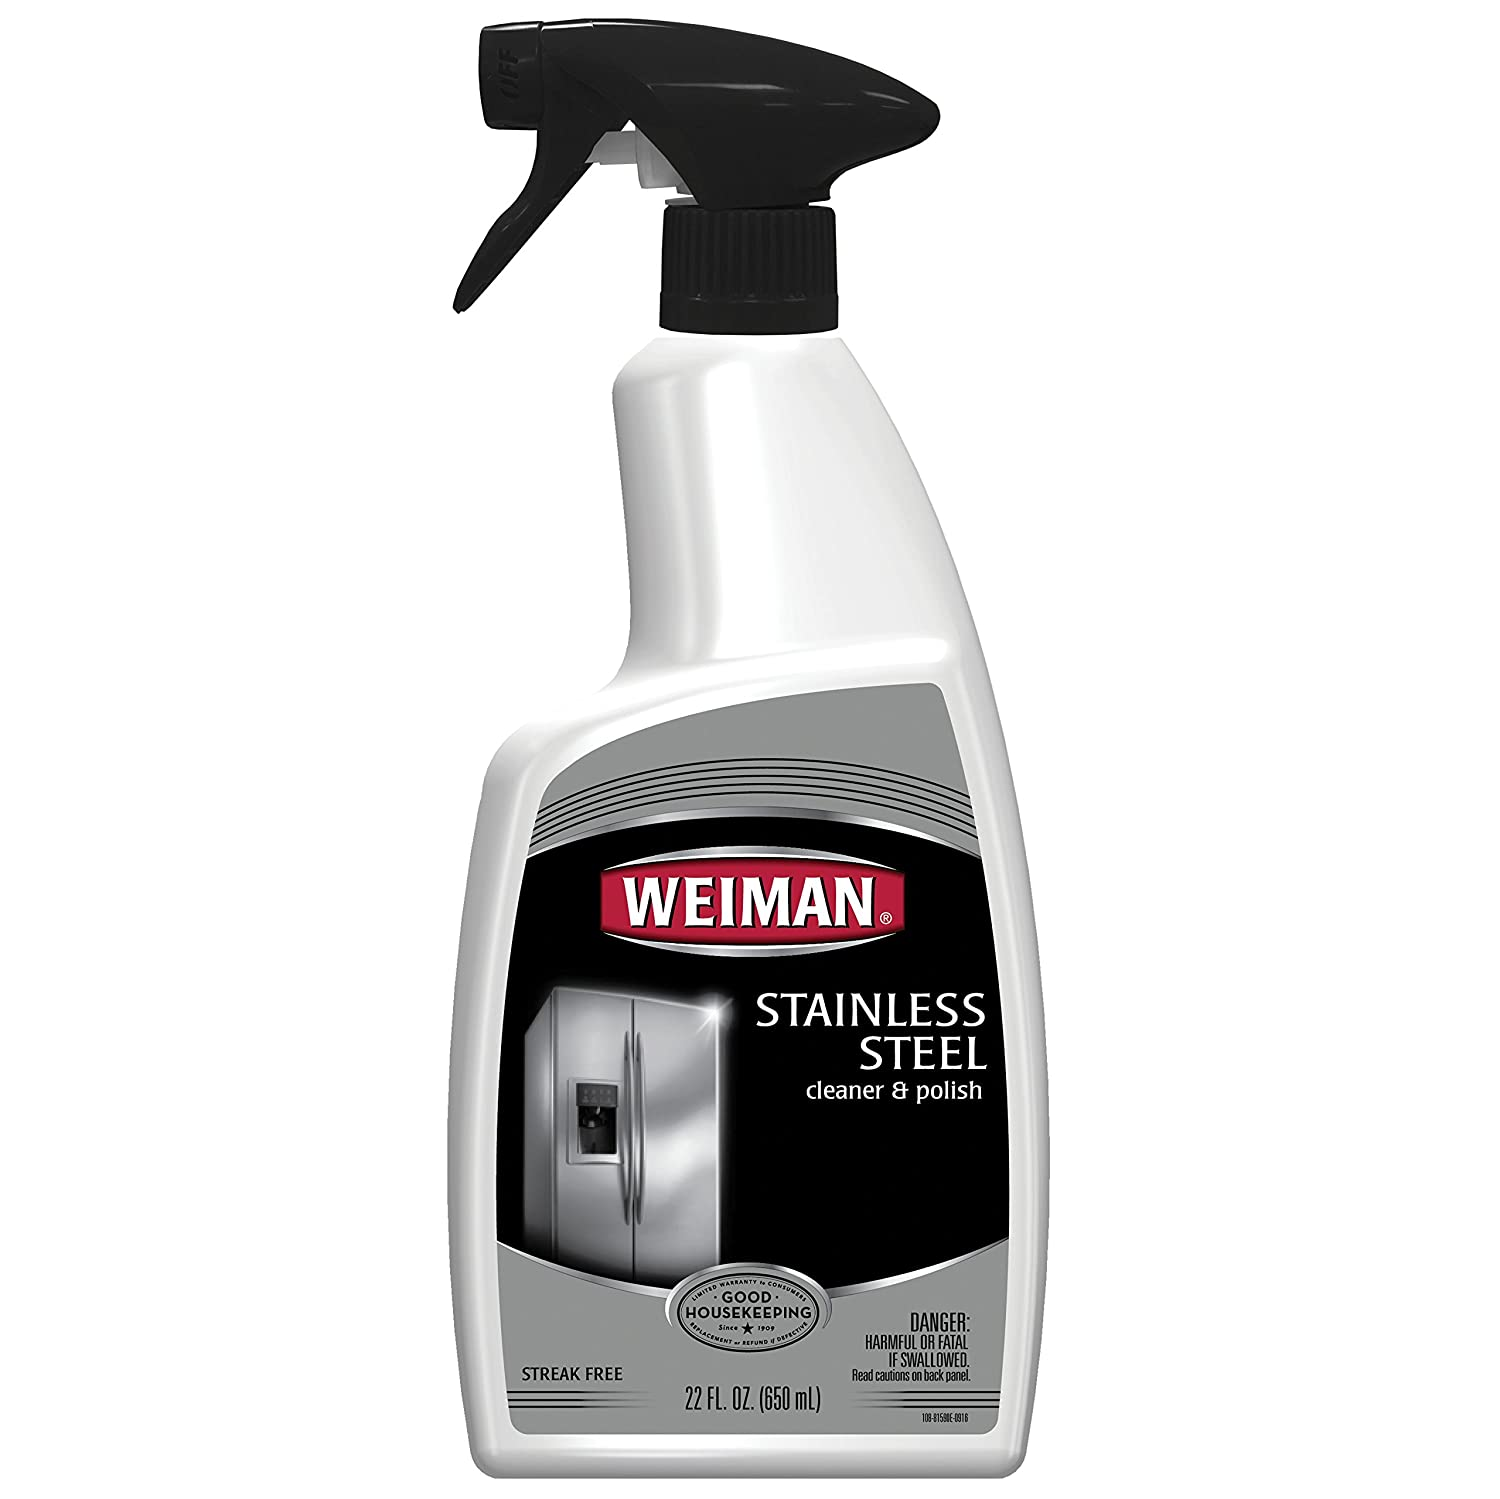 Amazoncom Weiman Stainless Steel Cleaner and Polish StreakFree